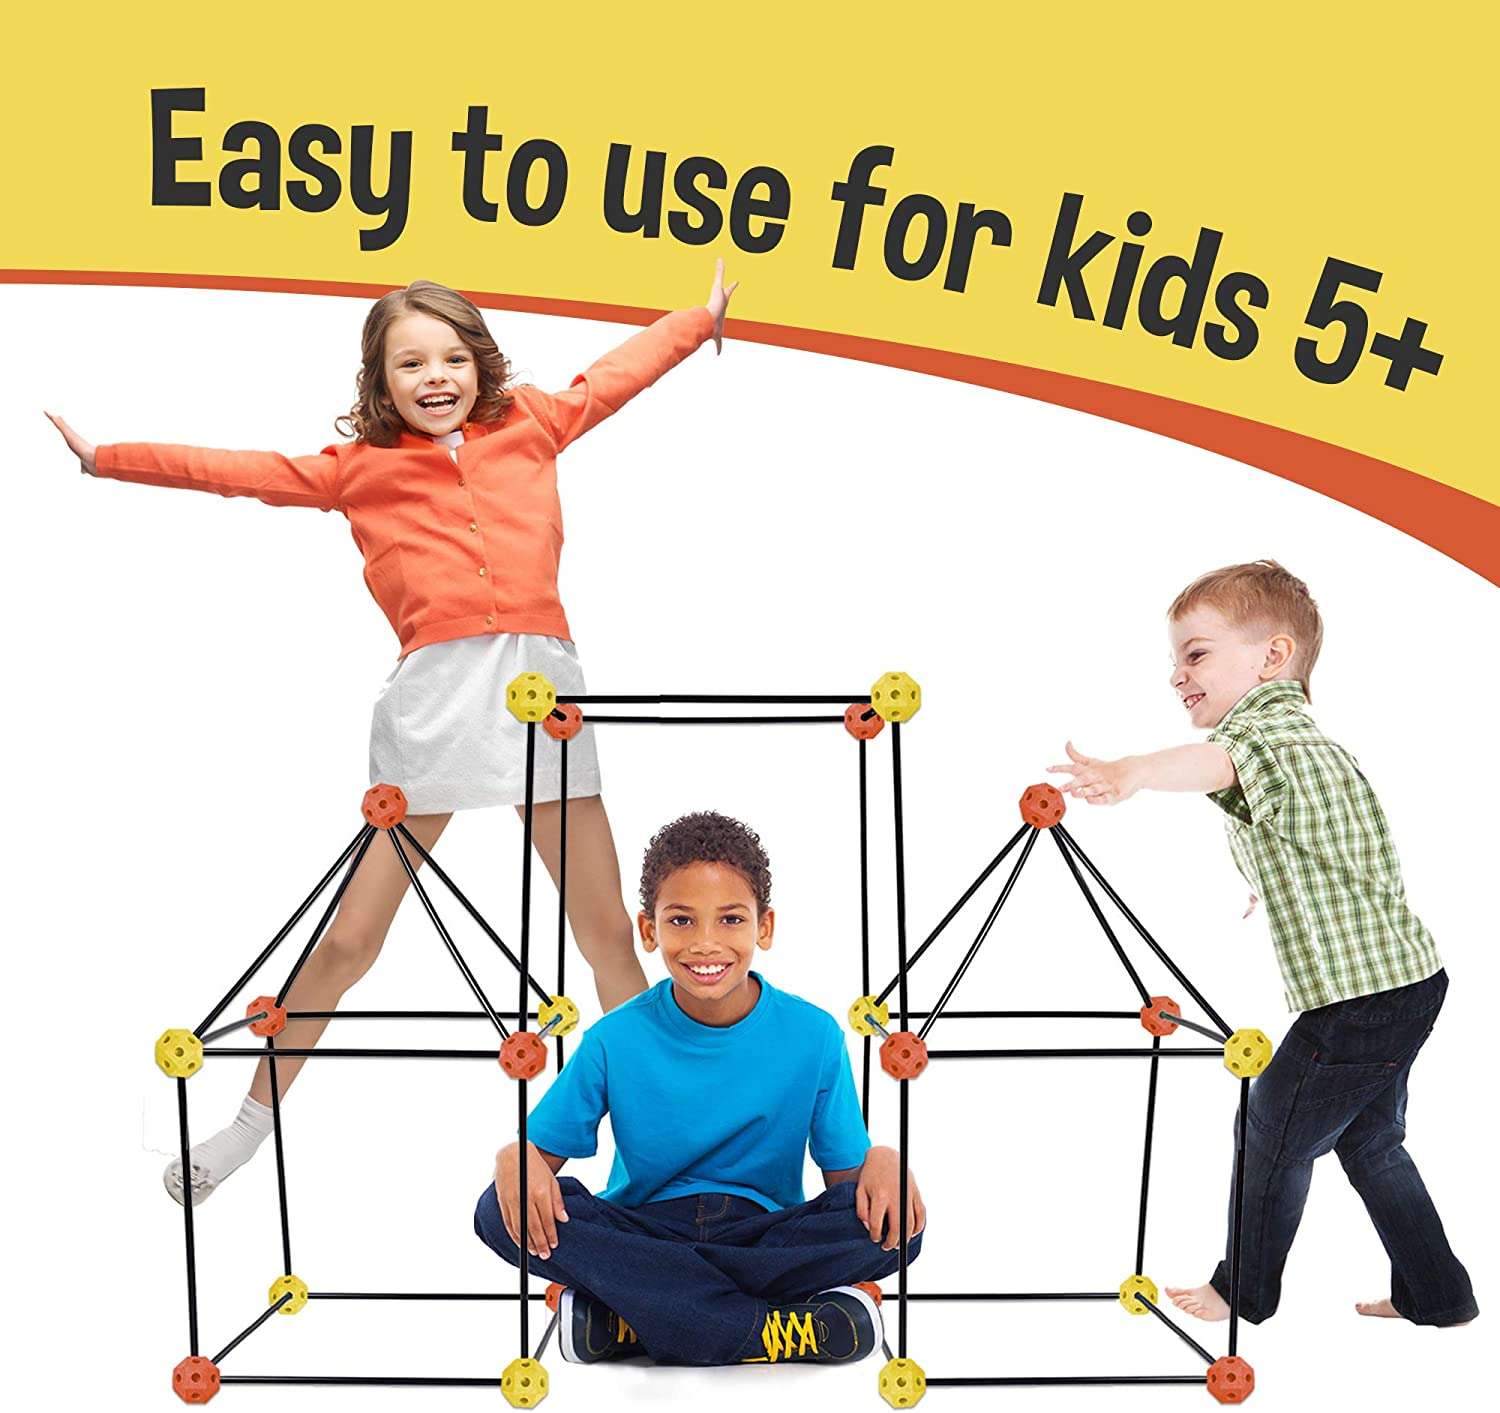 Matchaccino Construction Fort Building Kit - 77 Pieces with Storage Bag - Orange and Yellow